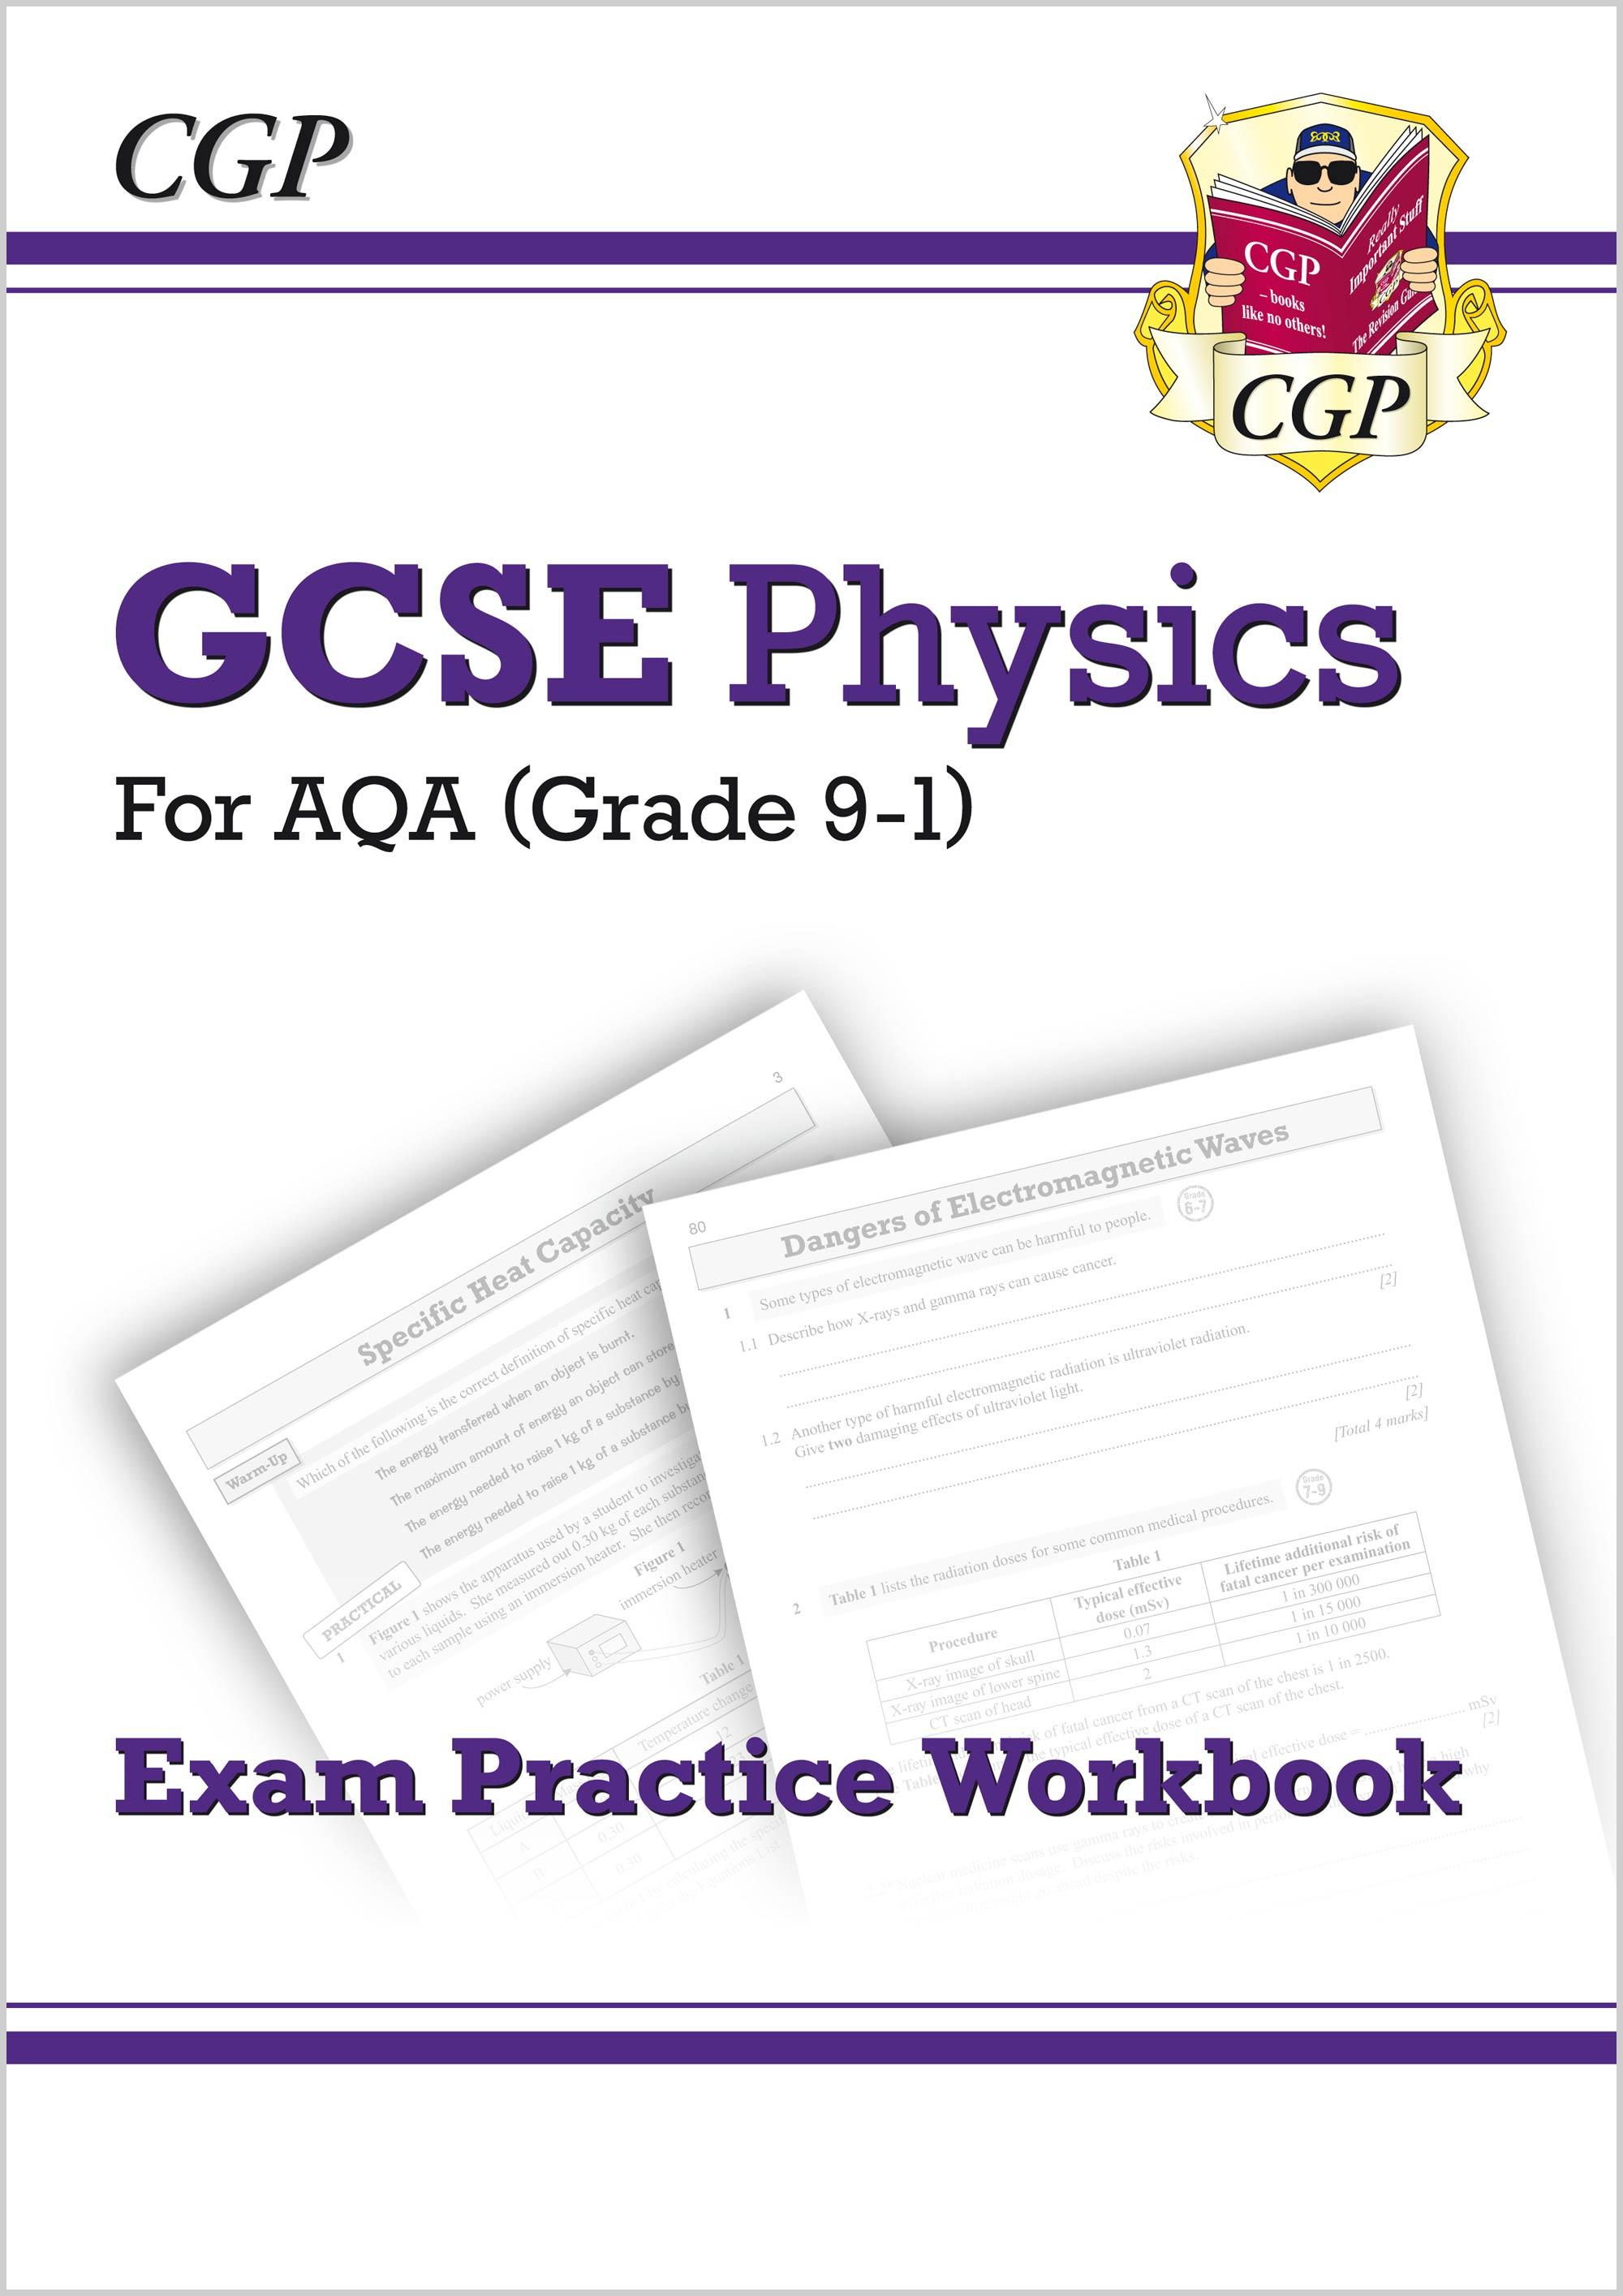 PAQ41 - Grade 9-1 GCSE Physics: AQA Exam Practice Workbook - Higher